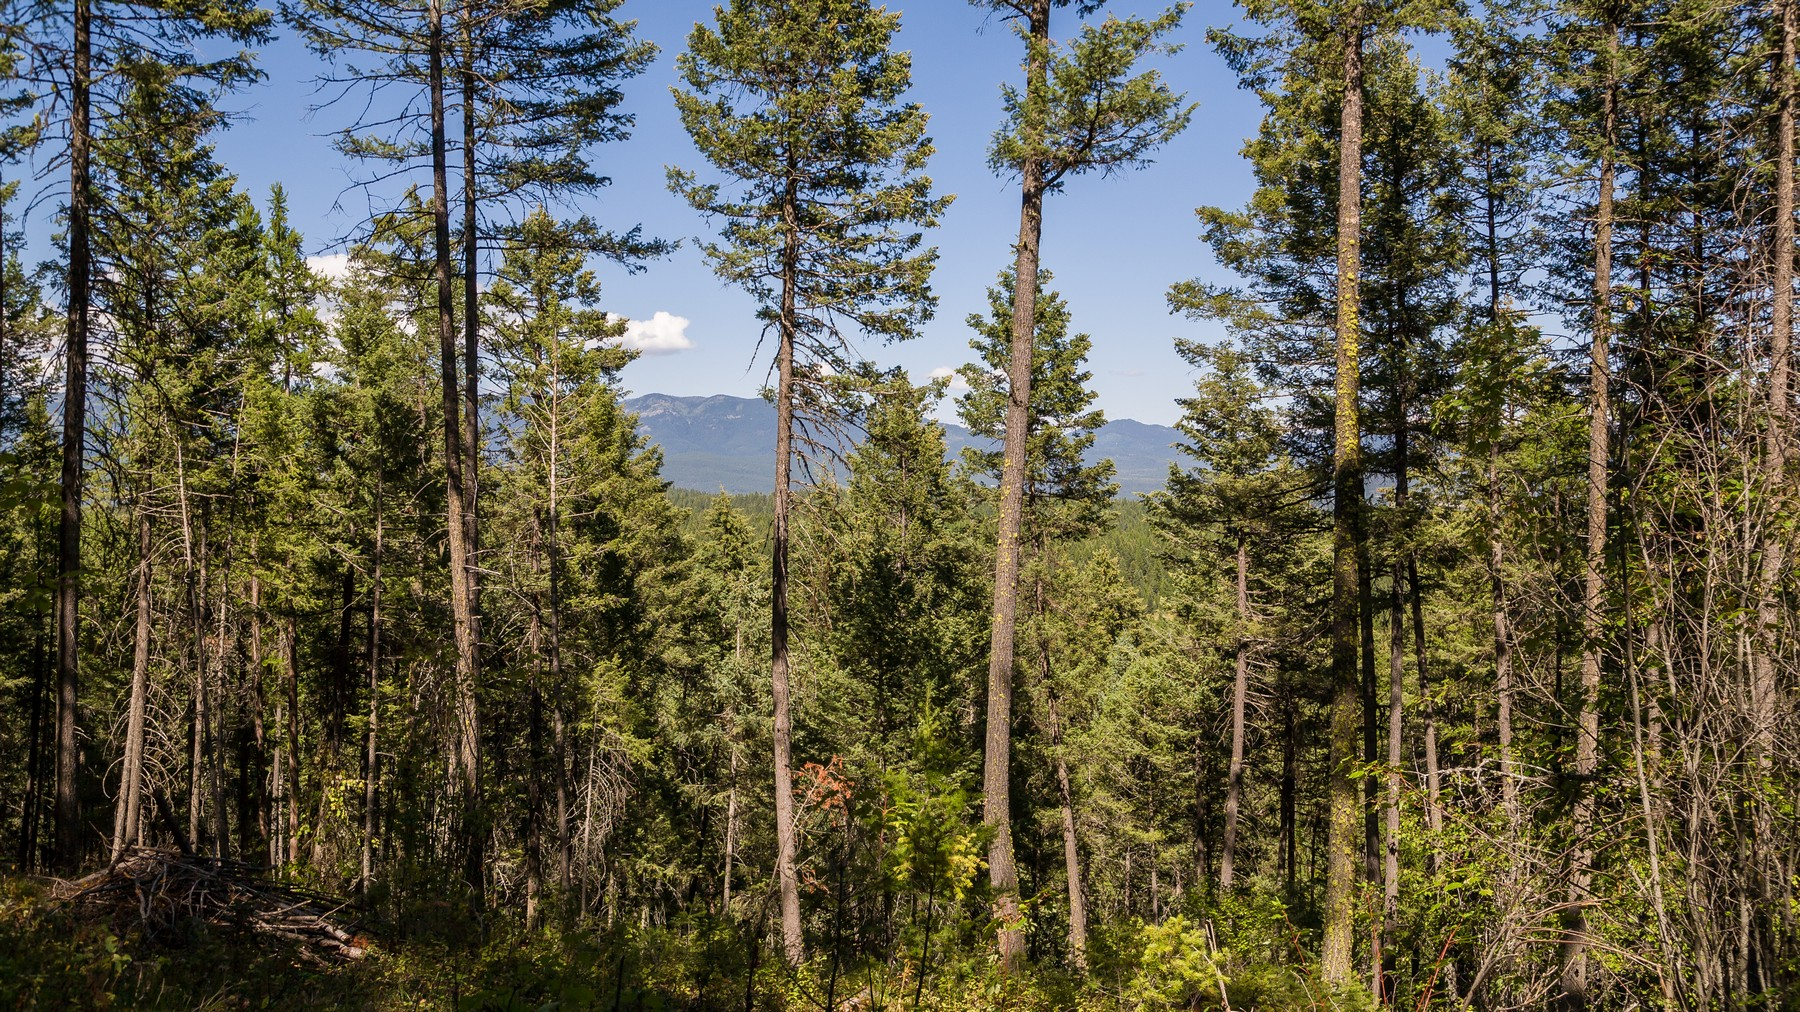 Additional photo for property listing at 828 Whitefish Ranch Road, Lot 6, Whitefish, MT 599 828  Whitefish Ranch Road Lot 6 Whitefish, Montana 59937 United States